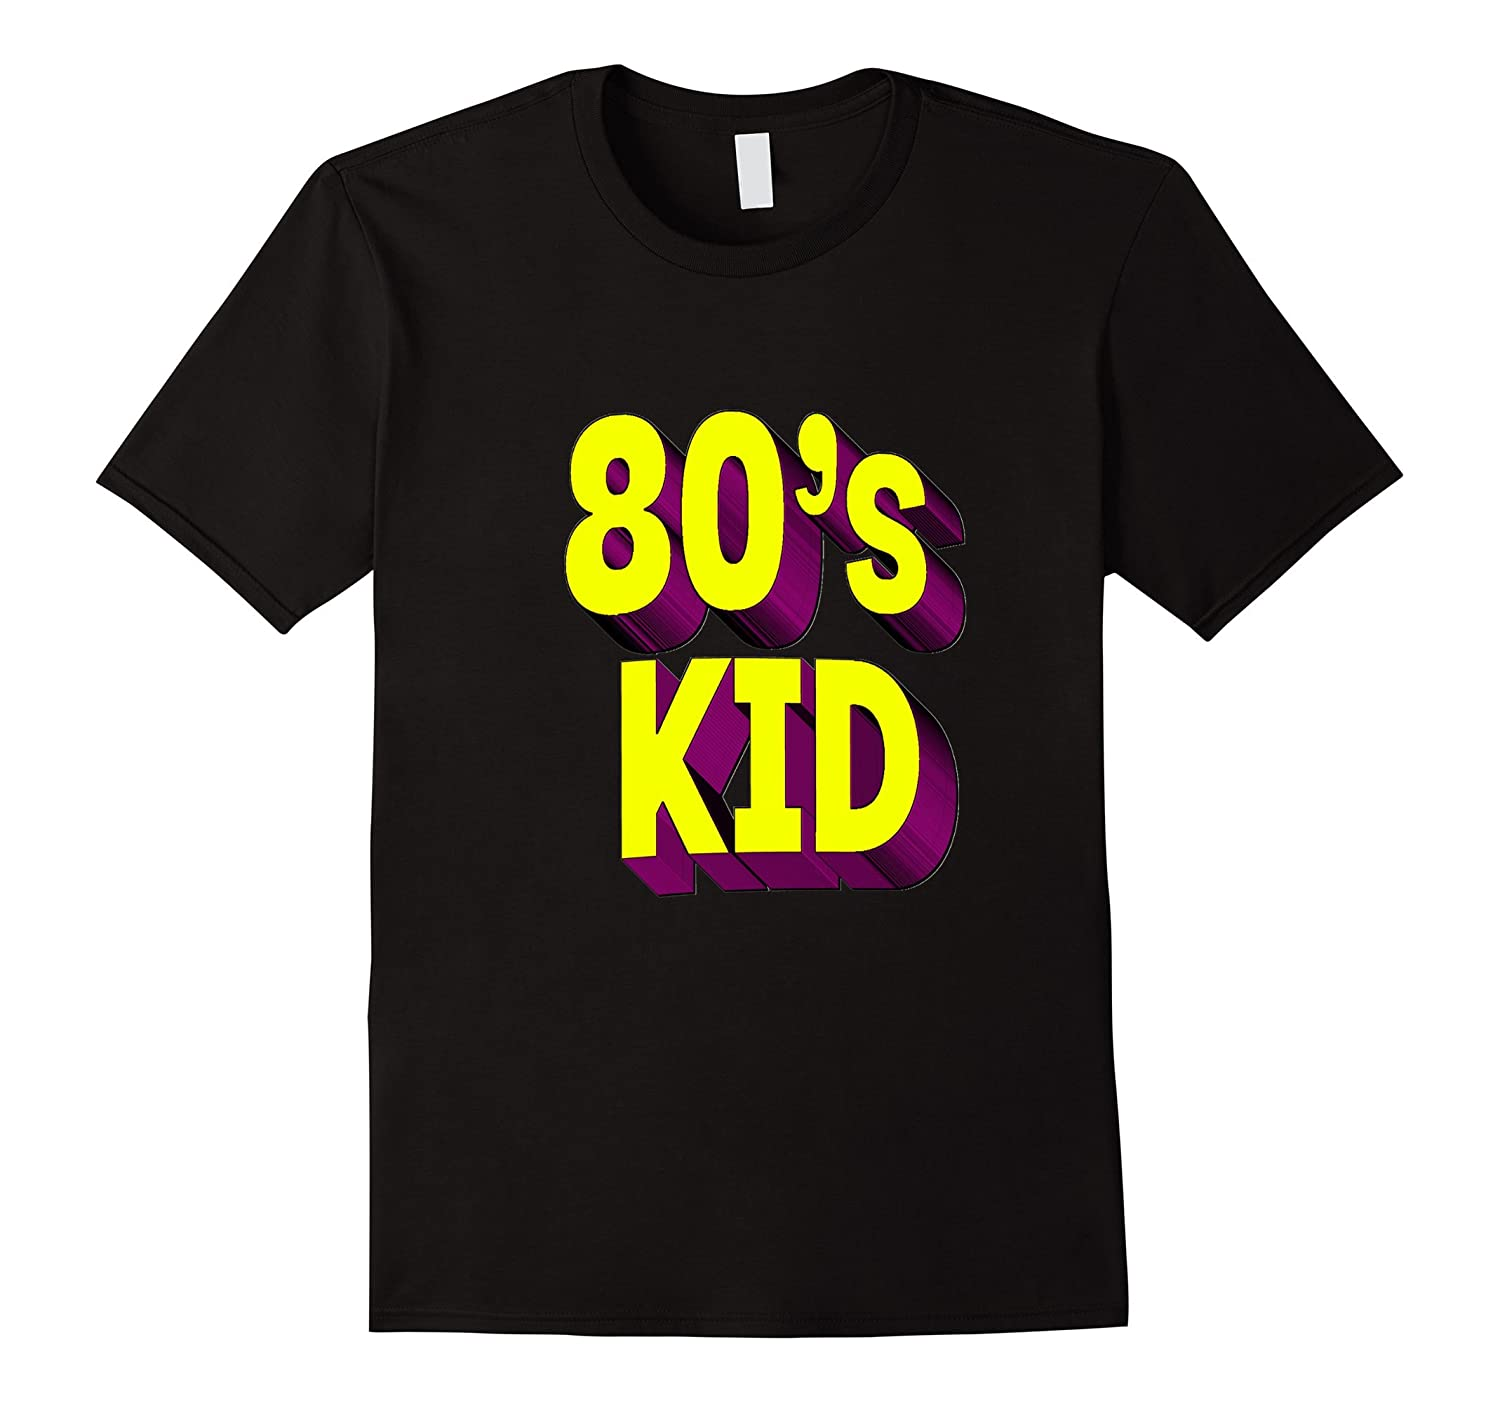 80's Kid Shirt - Born in the 80s, 1980s for Mens Womens-CL